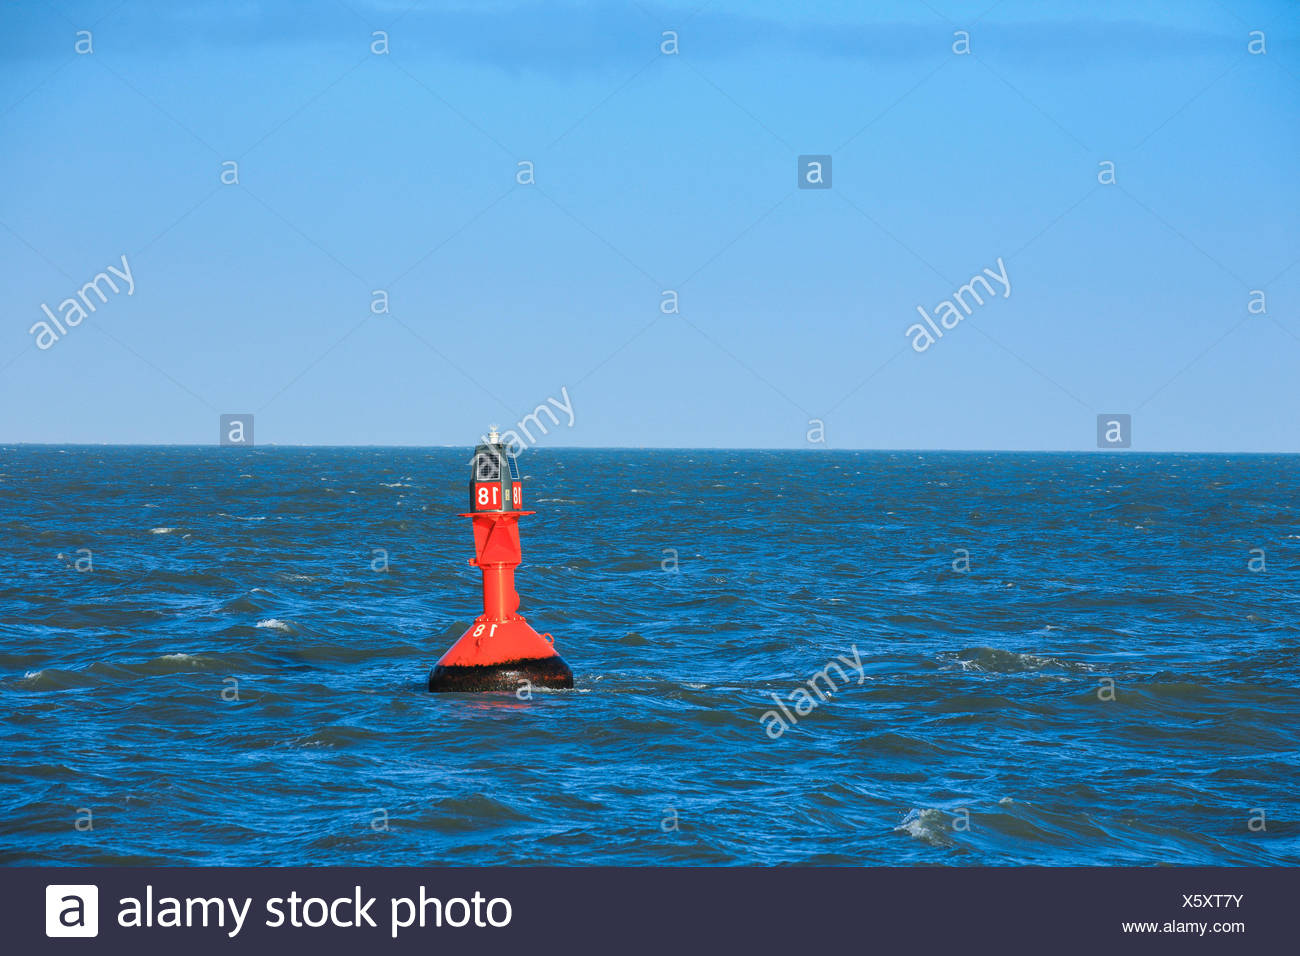 light buoy in the North Sea, Germany - Stock Image